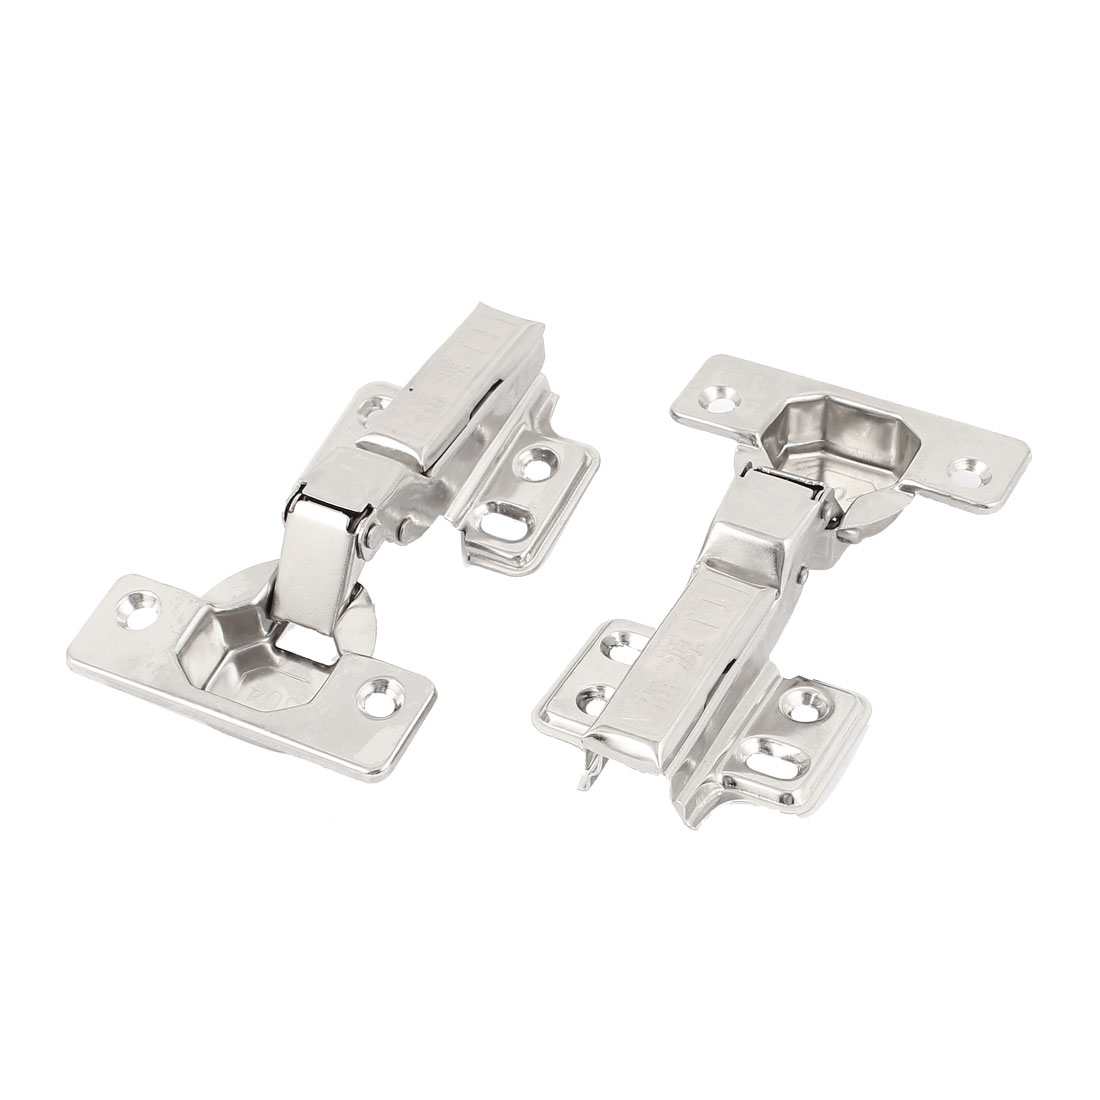 Furniture Hardware Stainless Steel Half Overlay Concealed Cabinet Hinge 2 Pcs